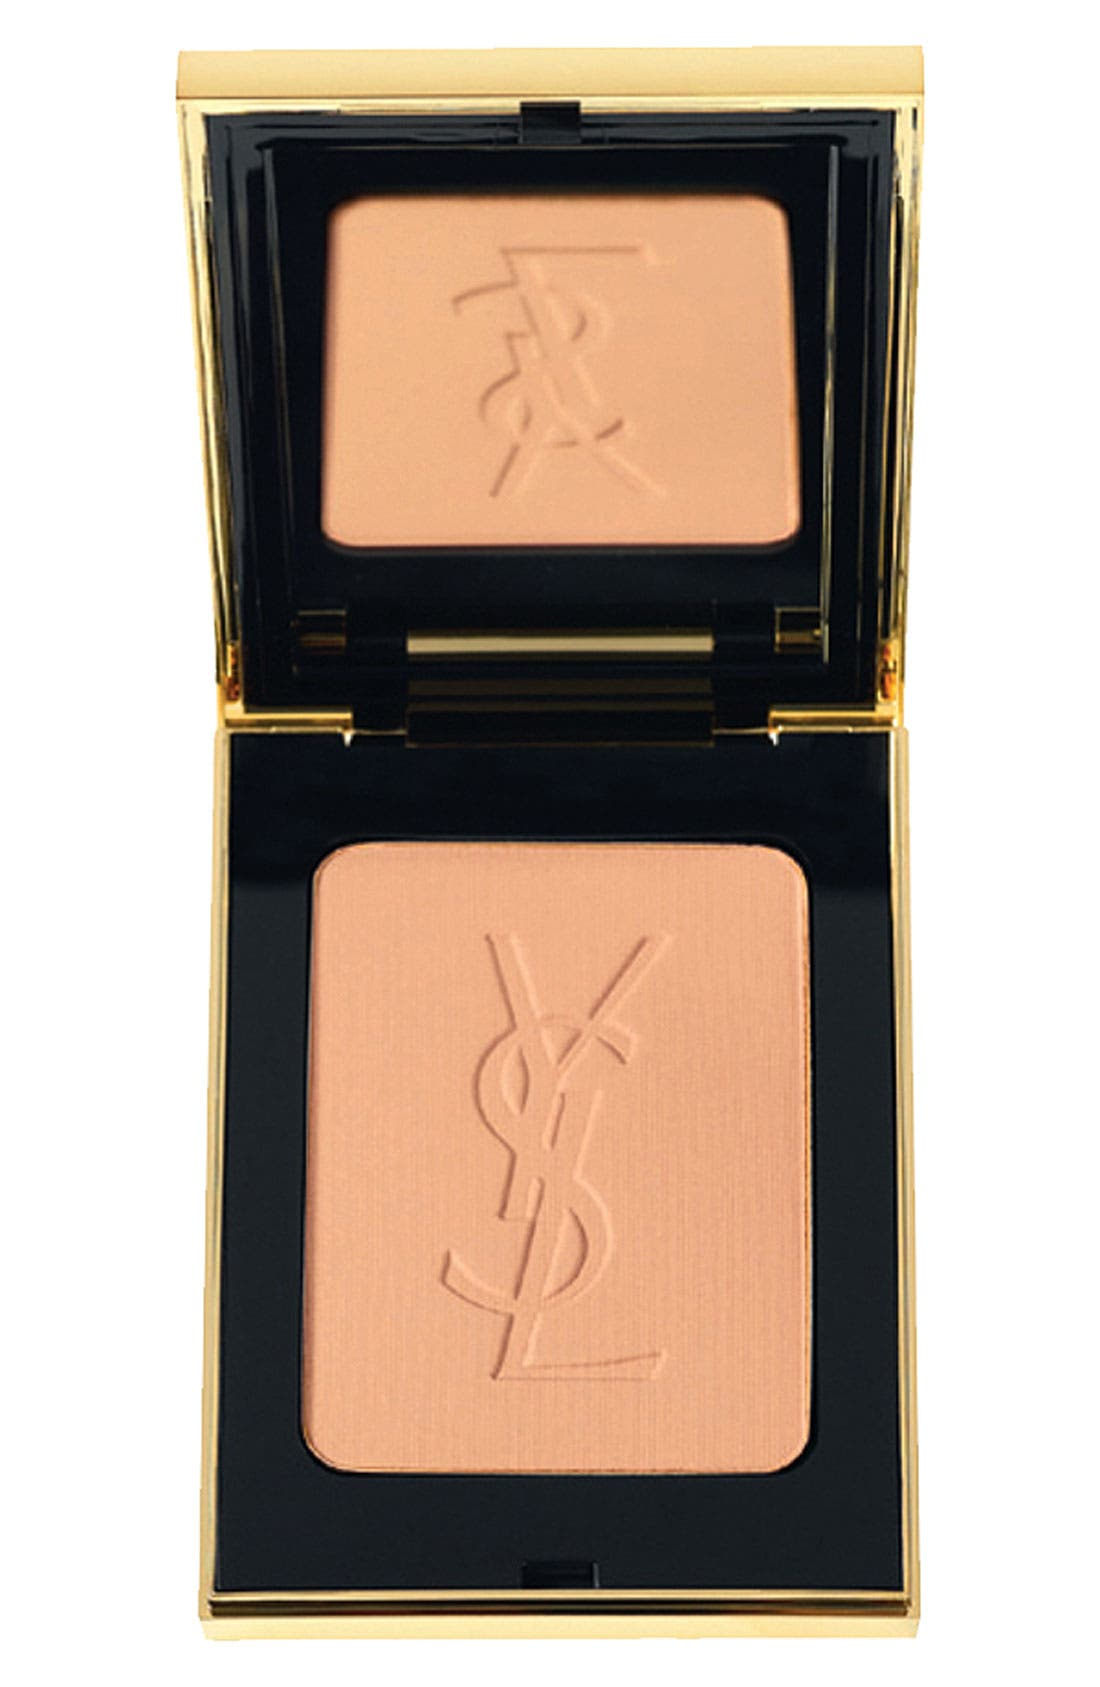 Yves Saint Laurent Radiant Pressed Powder Compact -